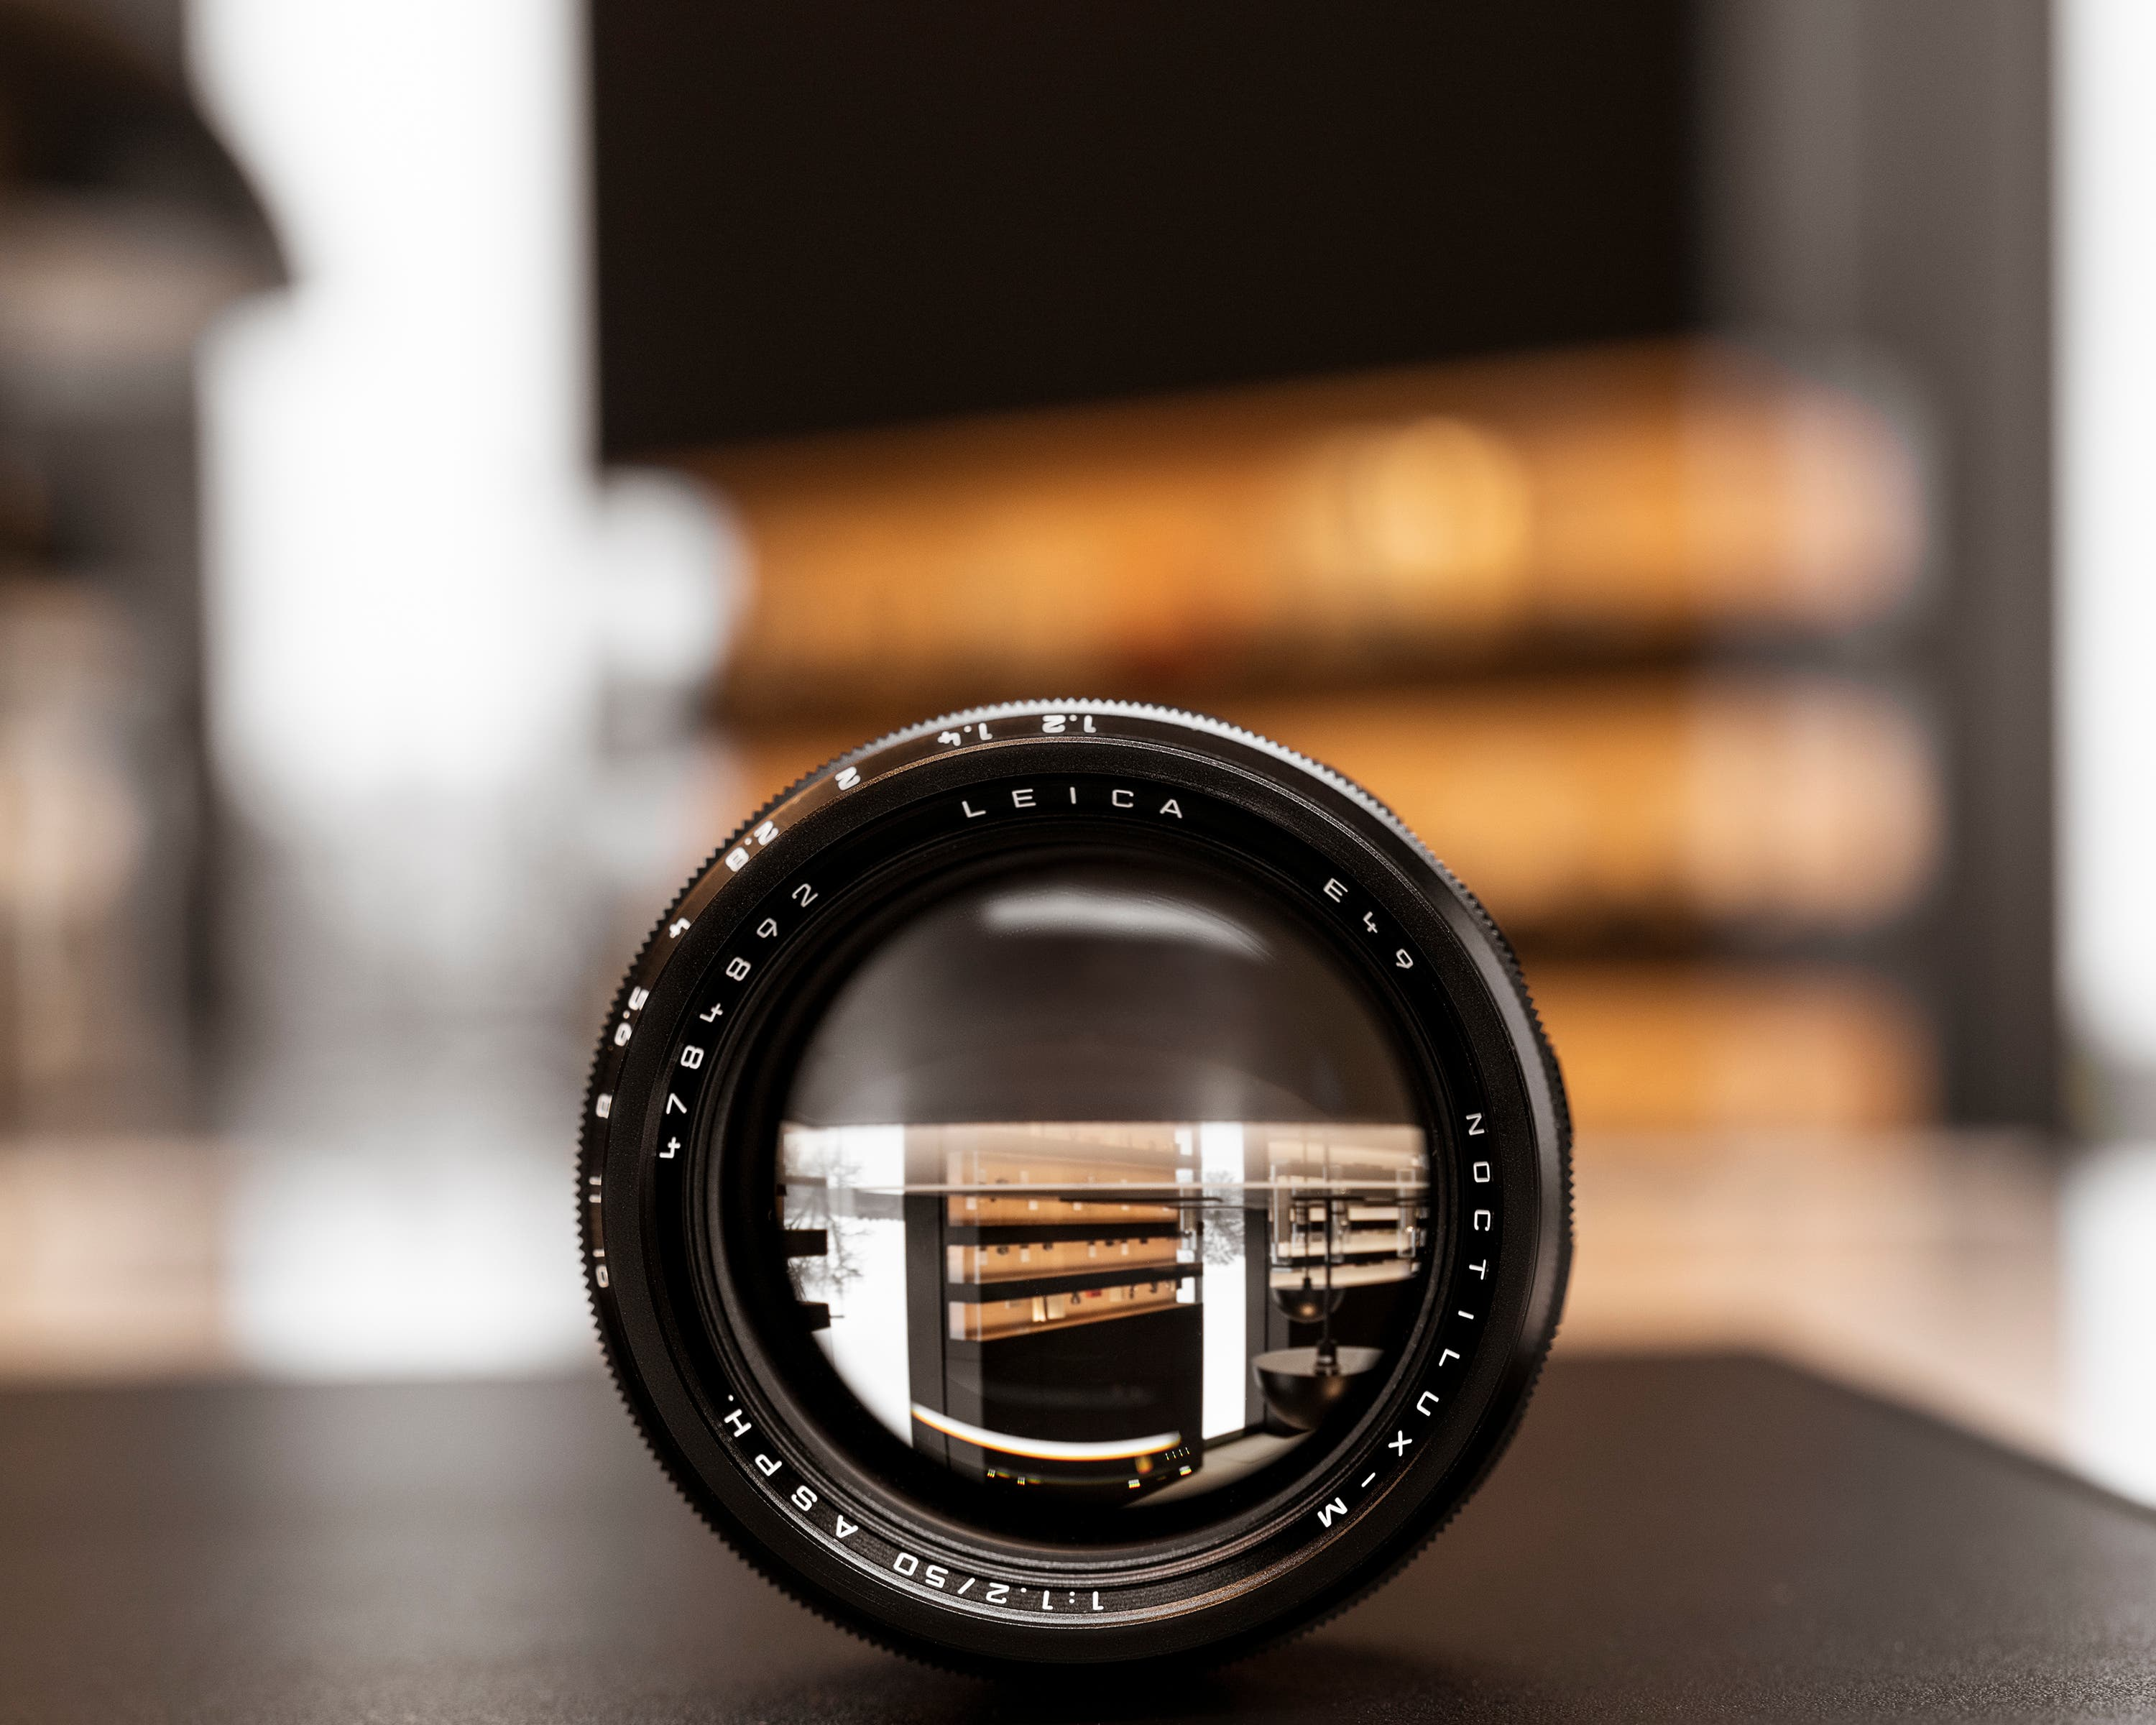 Why the New Leica 50mm f1.2 Noctilux is Such an Important Lens